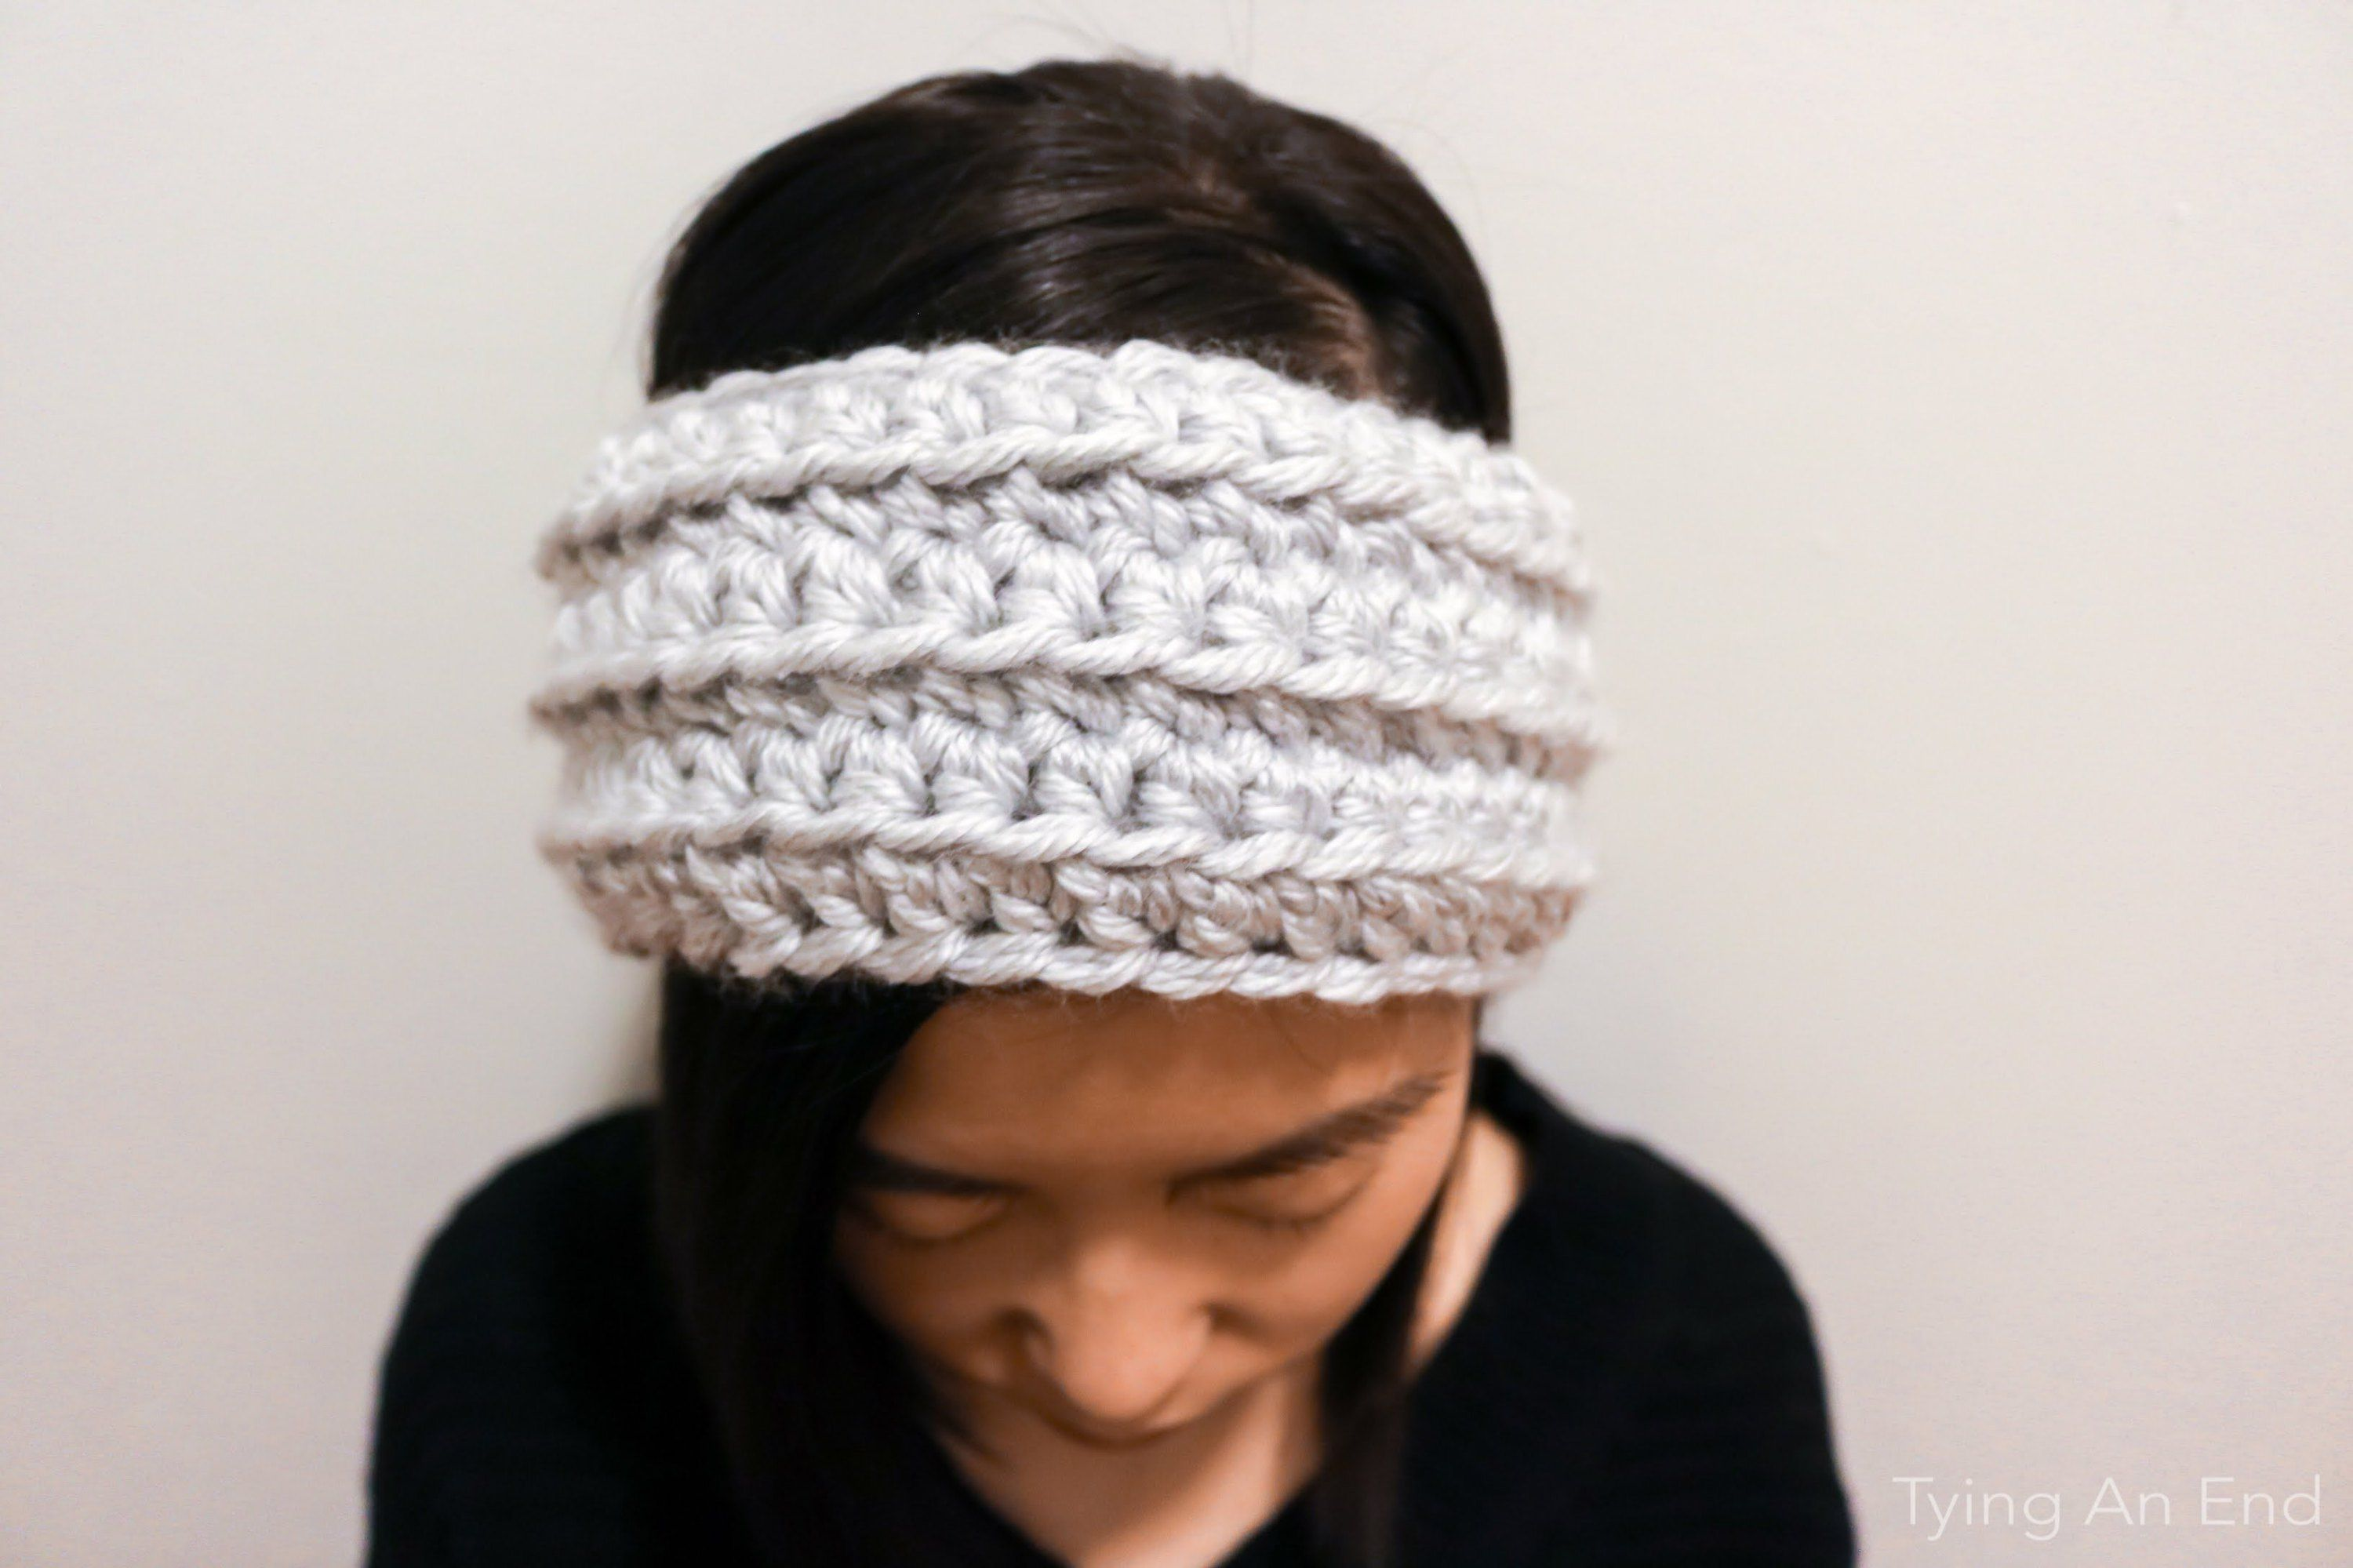 Free Crochet Pattern] Eve Crochet Headband by Tying An End | Crochet ...